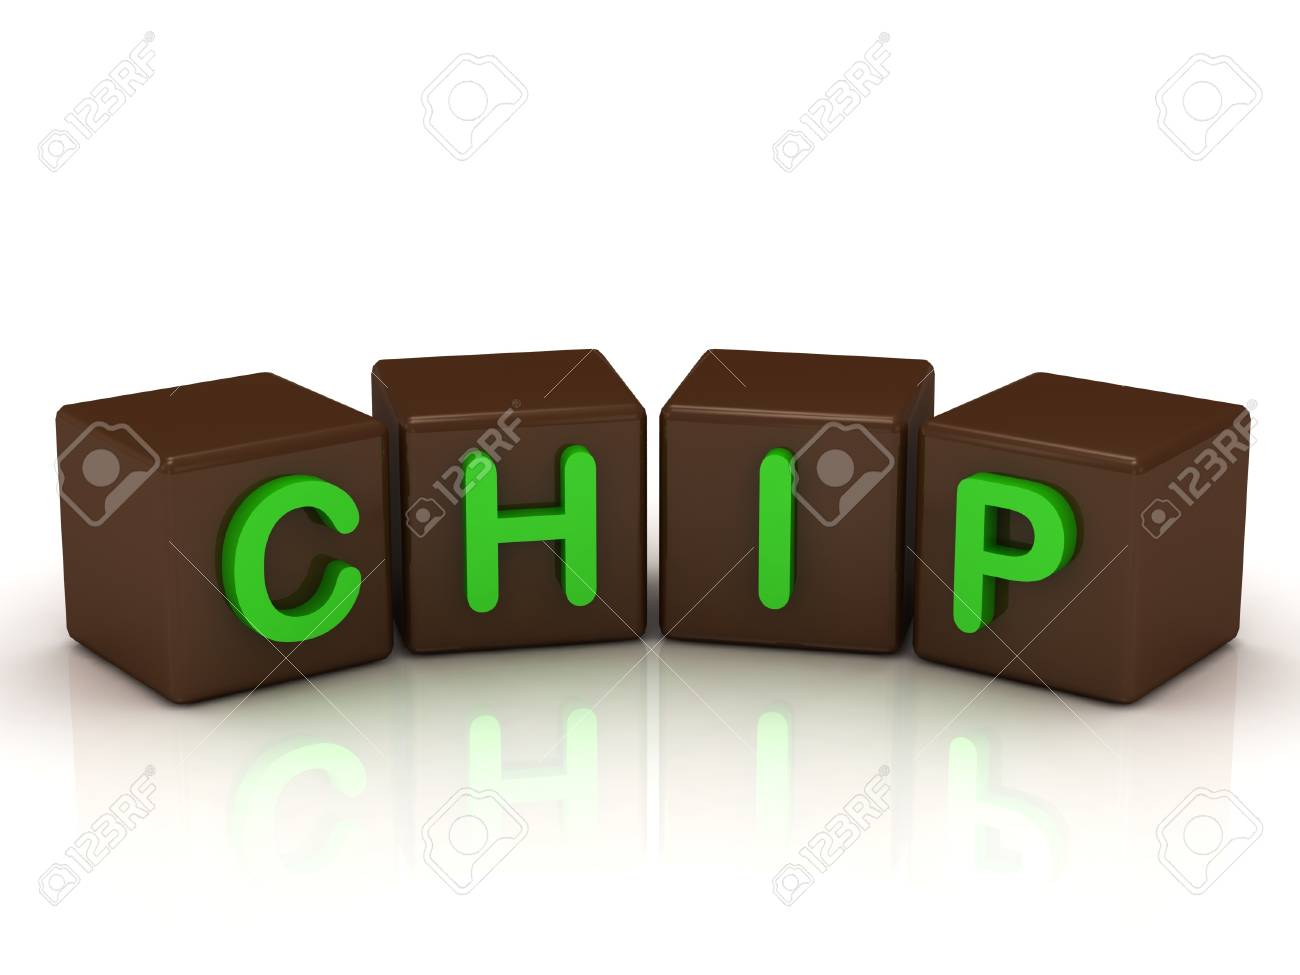 CHIP inscription bright green letters on the cubes of chocolate isolated on white background Stock Photo - 14687490